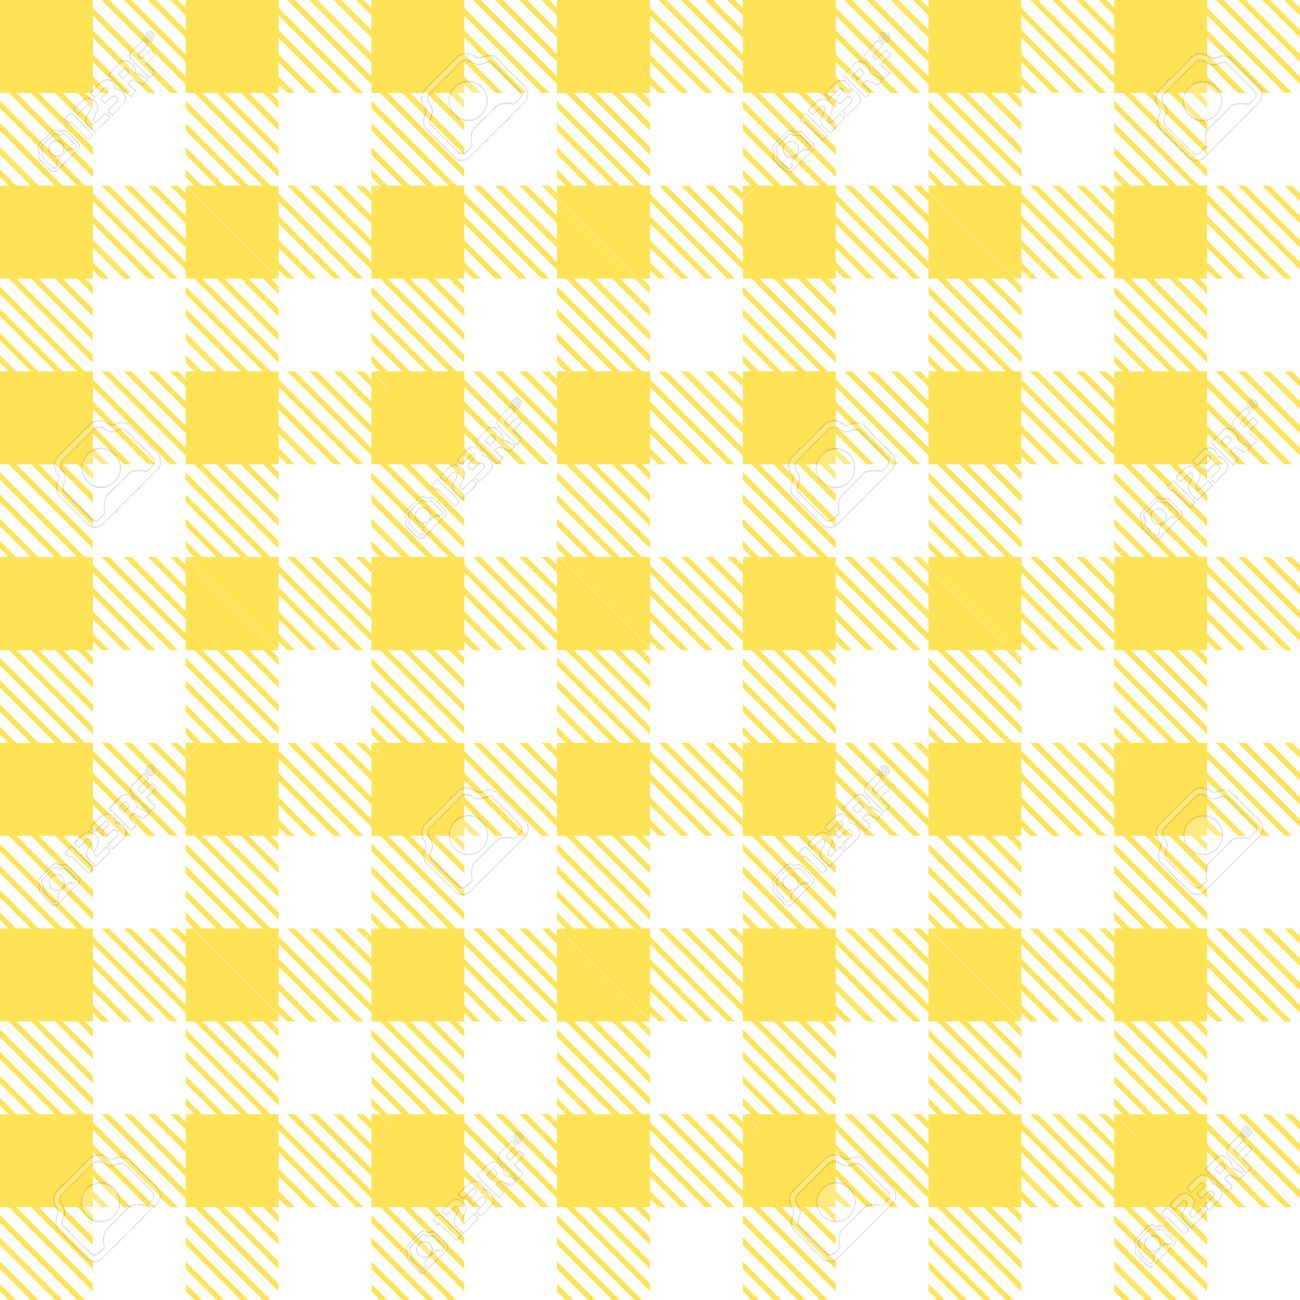 Kitchen Yellow Checkered Tablecloth Fabric Background. Stock Vector    50643717